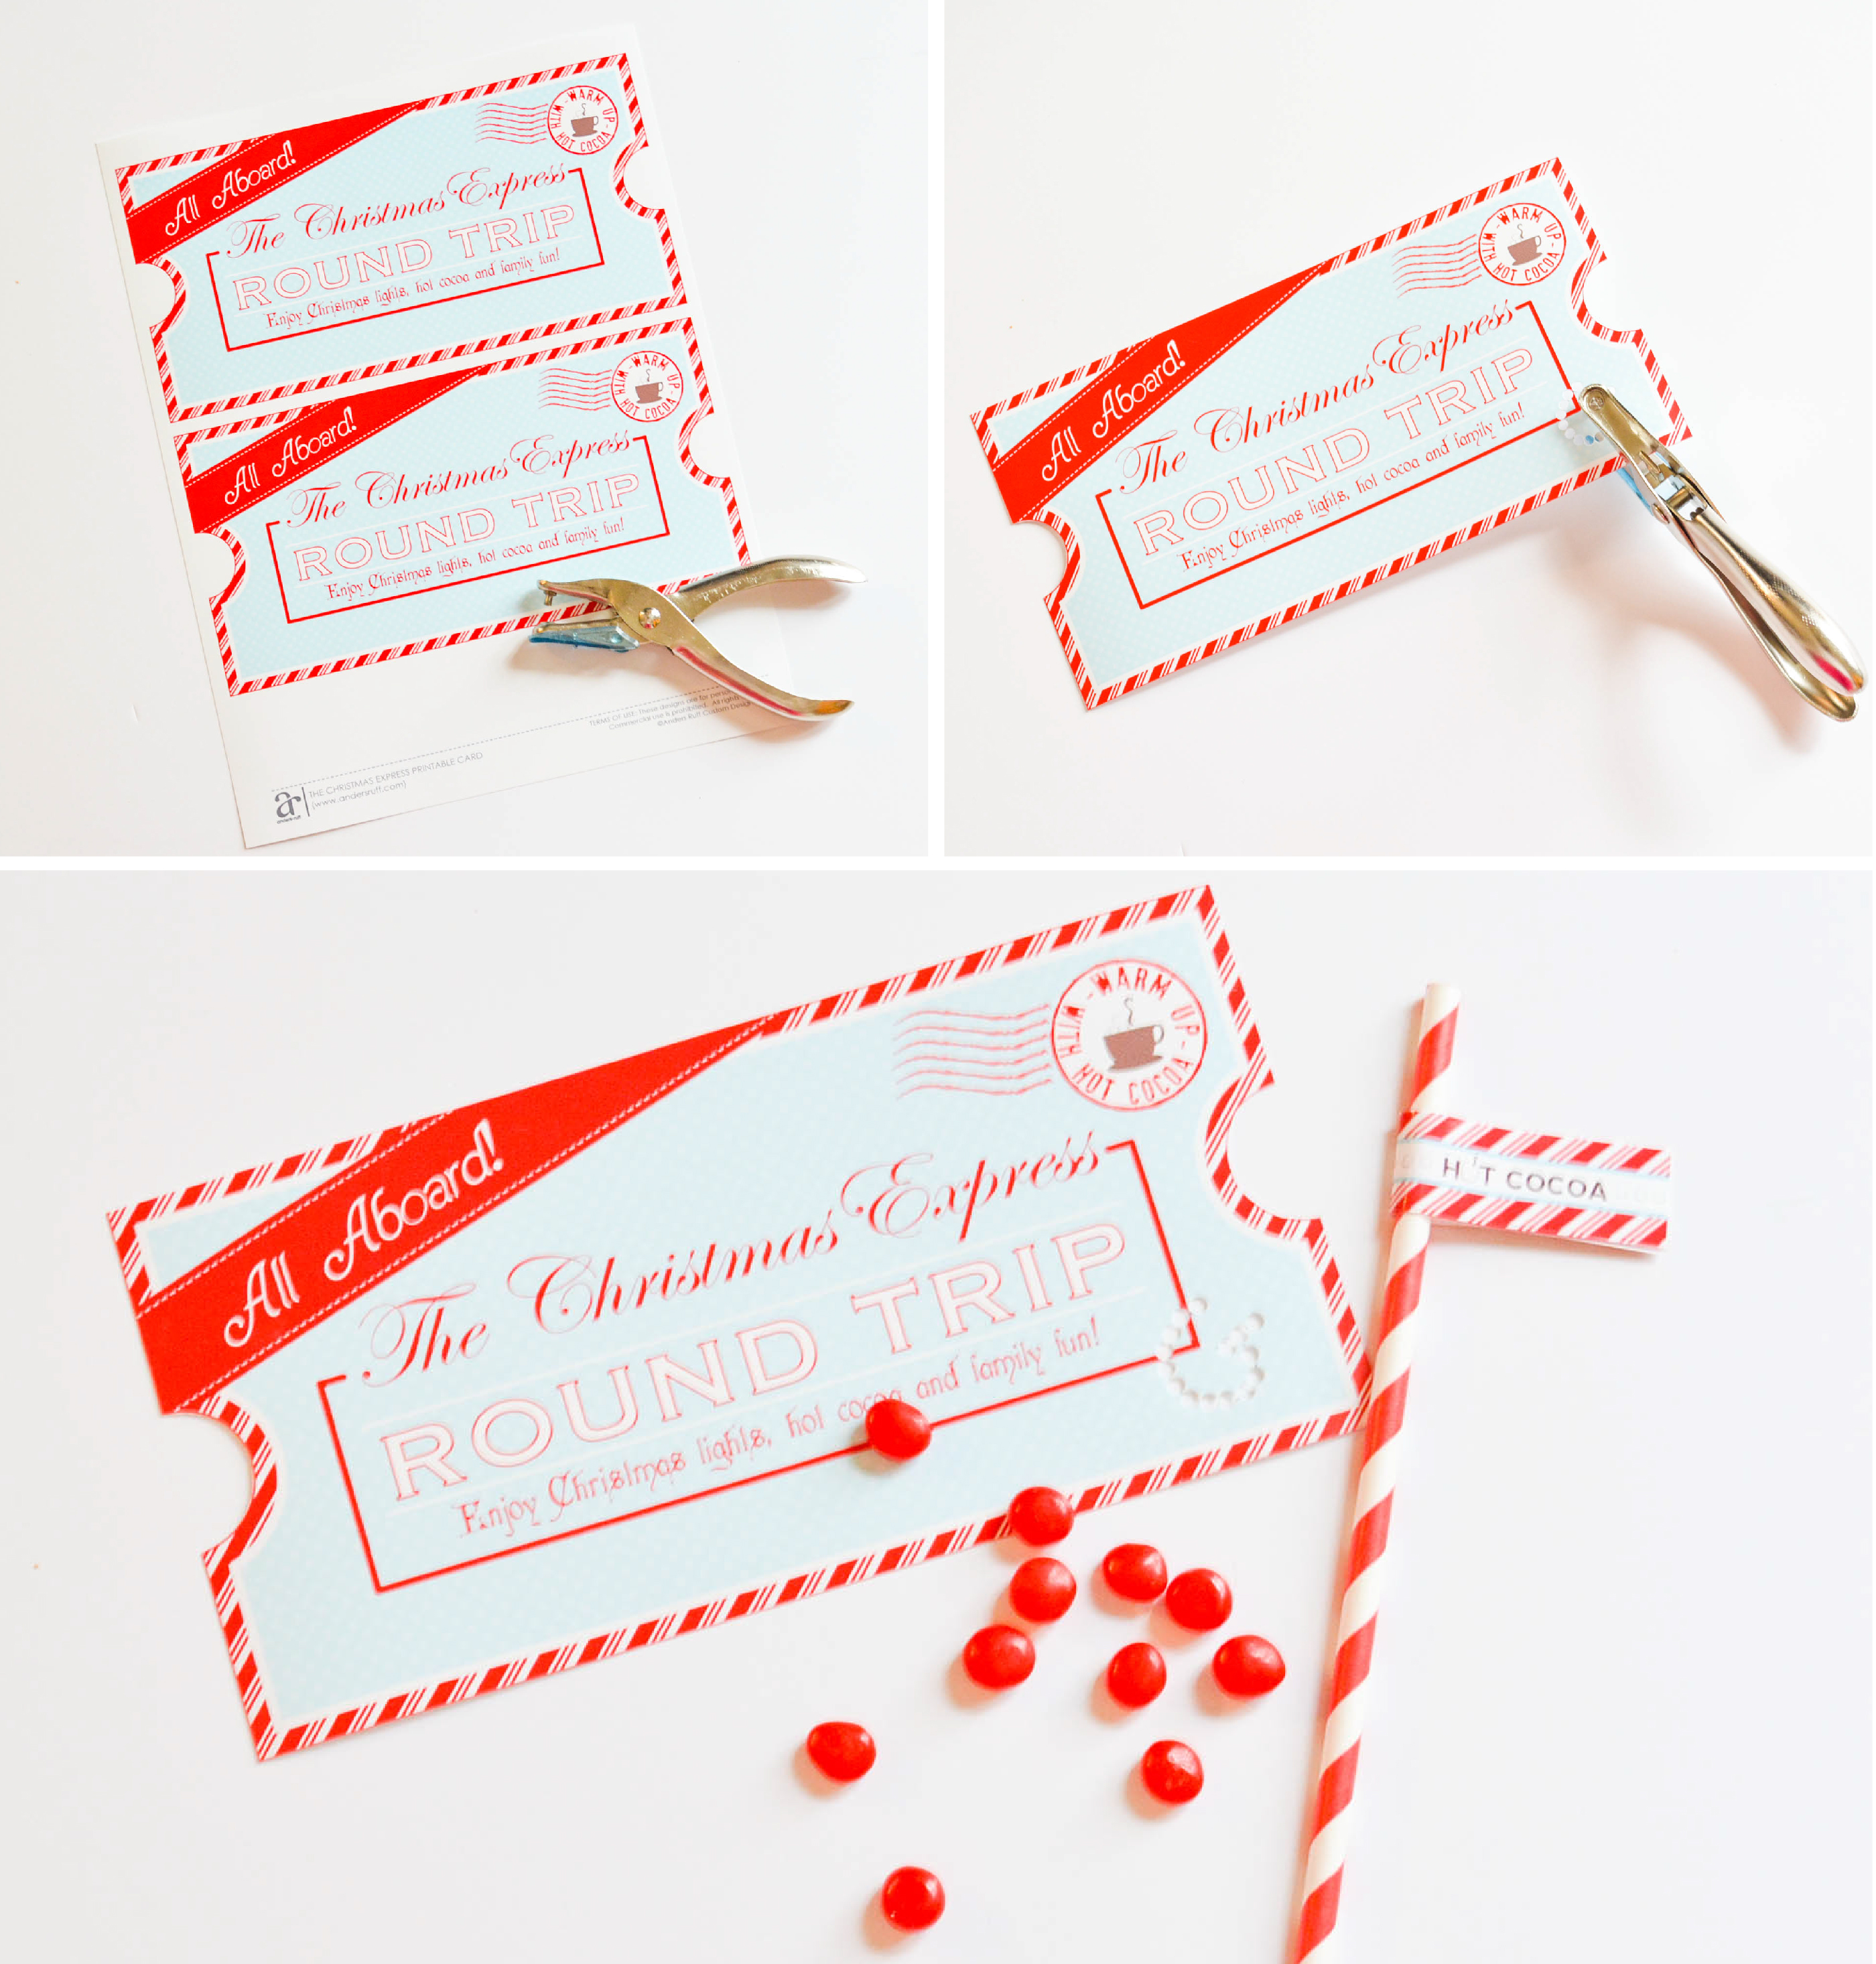 Download And Print The Free Printable Christmas Express Ticket 2. Trim With  Scissors 3. On The Special Night, Cut A Few Holes On The Ticket With A Hole  ...  Printable Ticket Paper